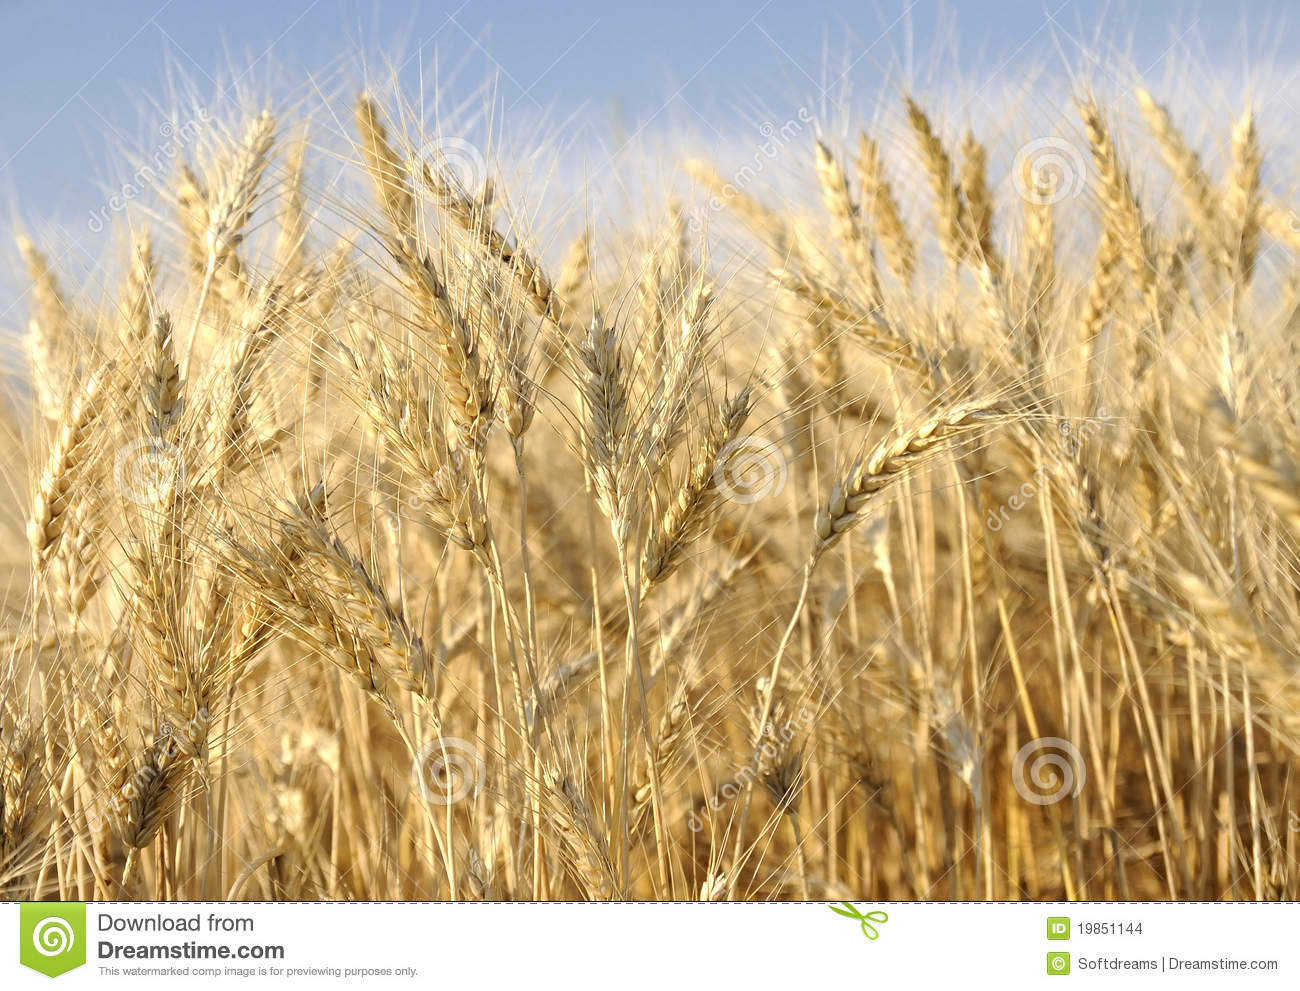 https://thumbs.dreamstime.com/z/golden-weat-meadow-19851144.jpg